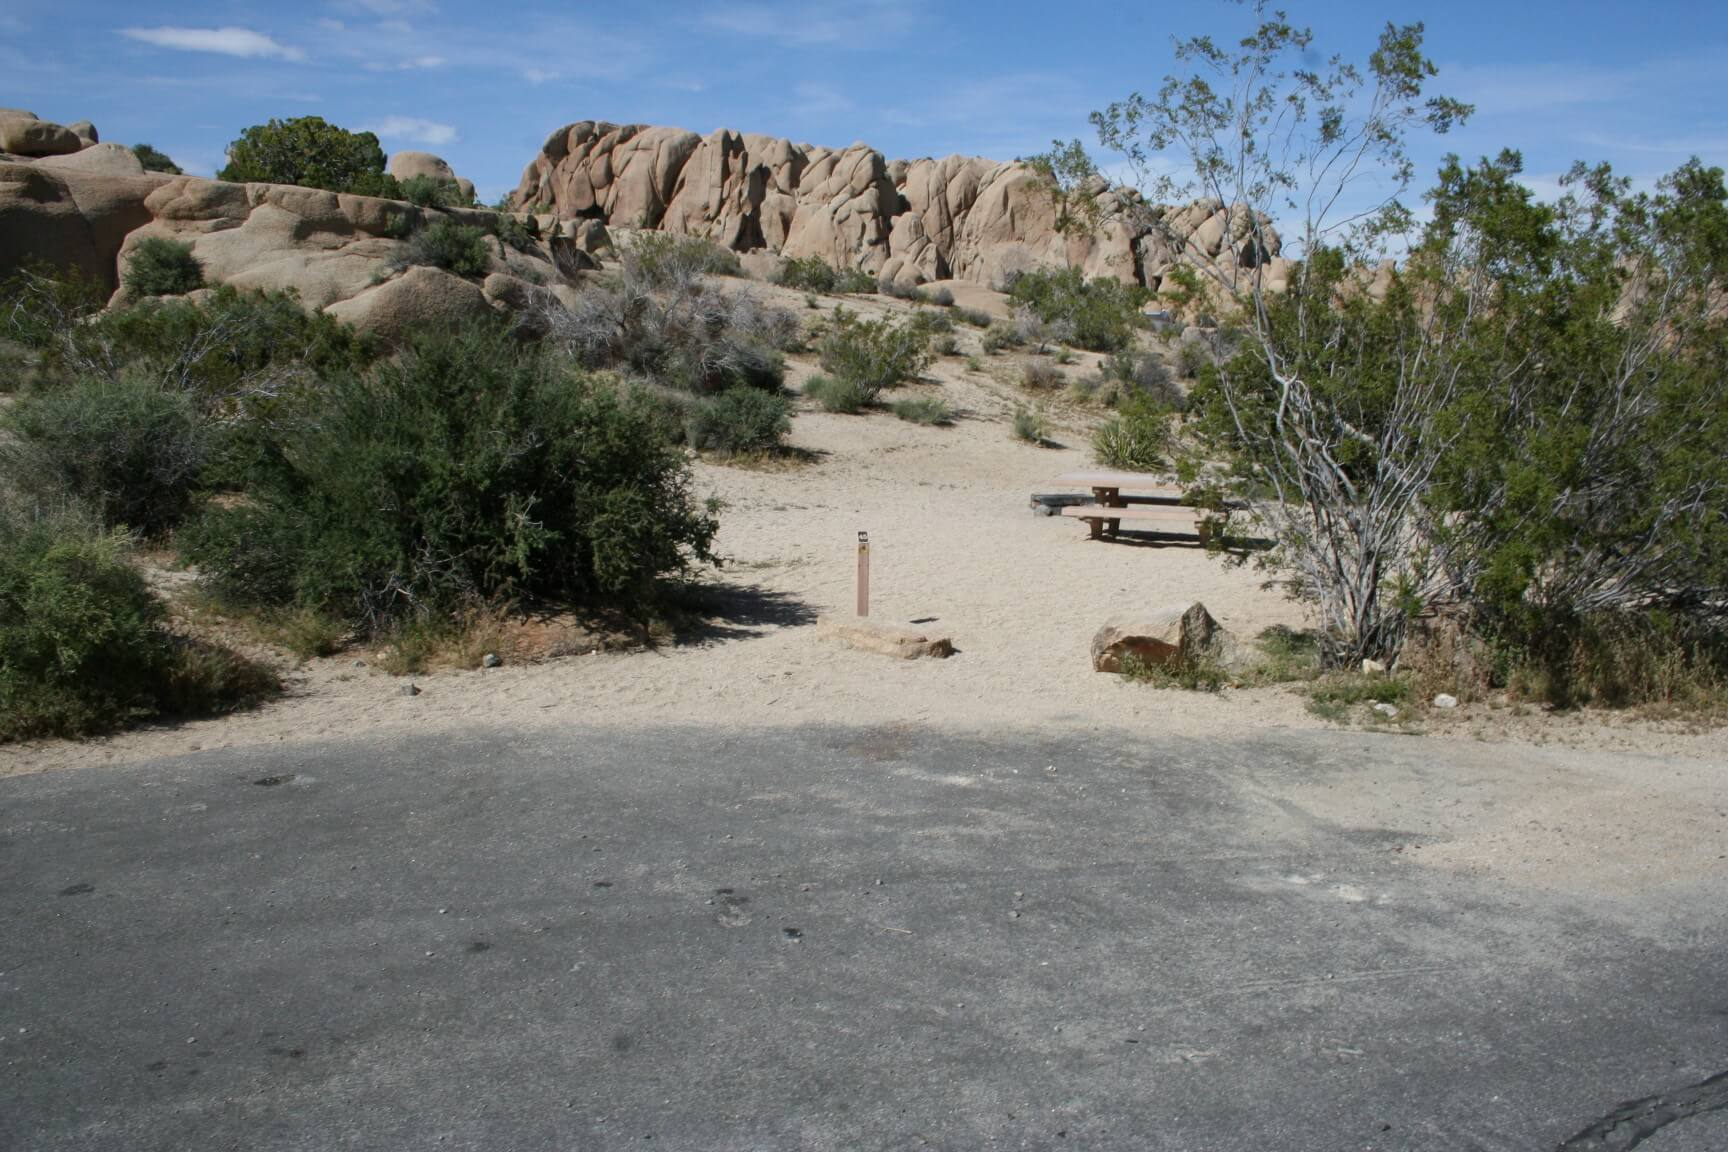 Joshua Tree National Park's Best Campsites Jumbo Rocks #45